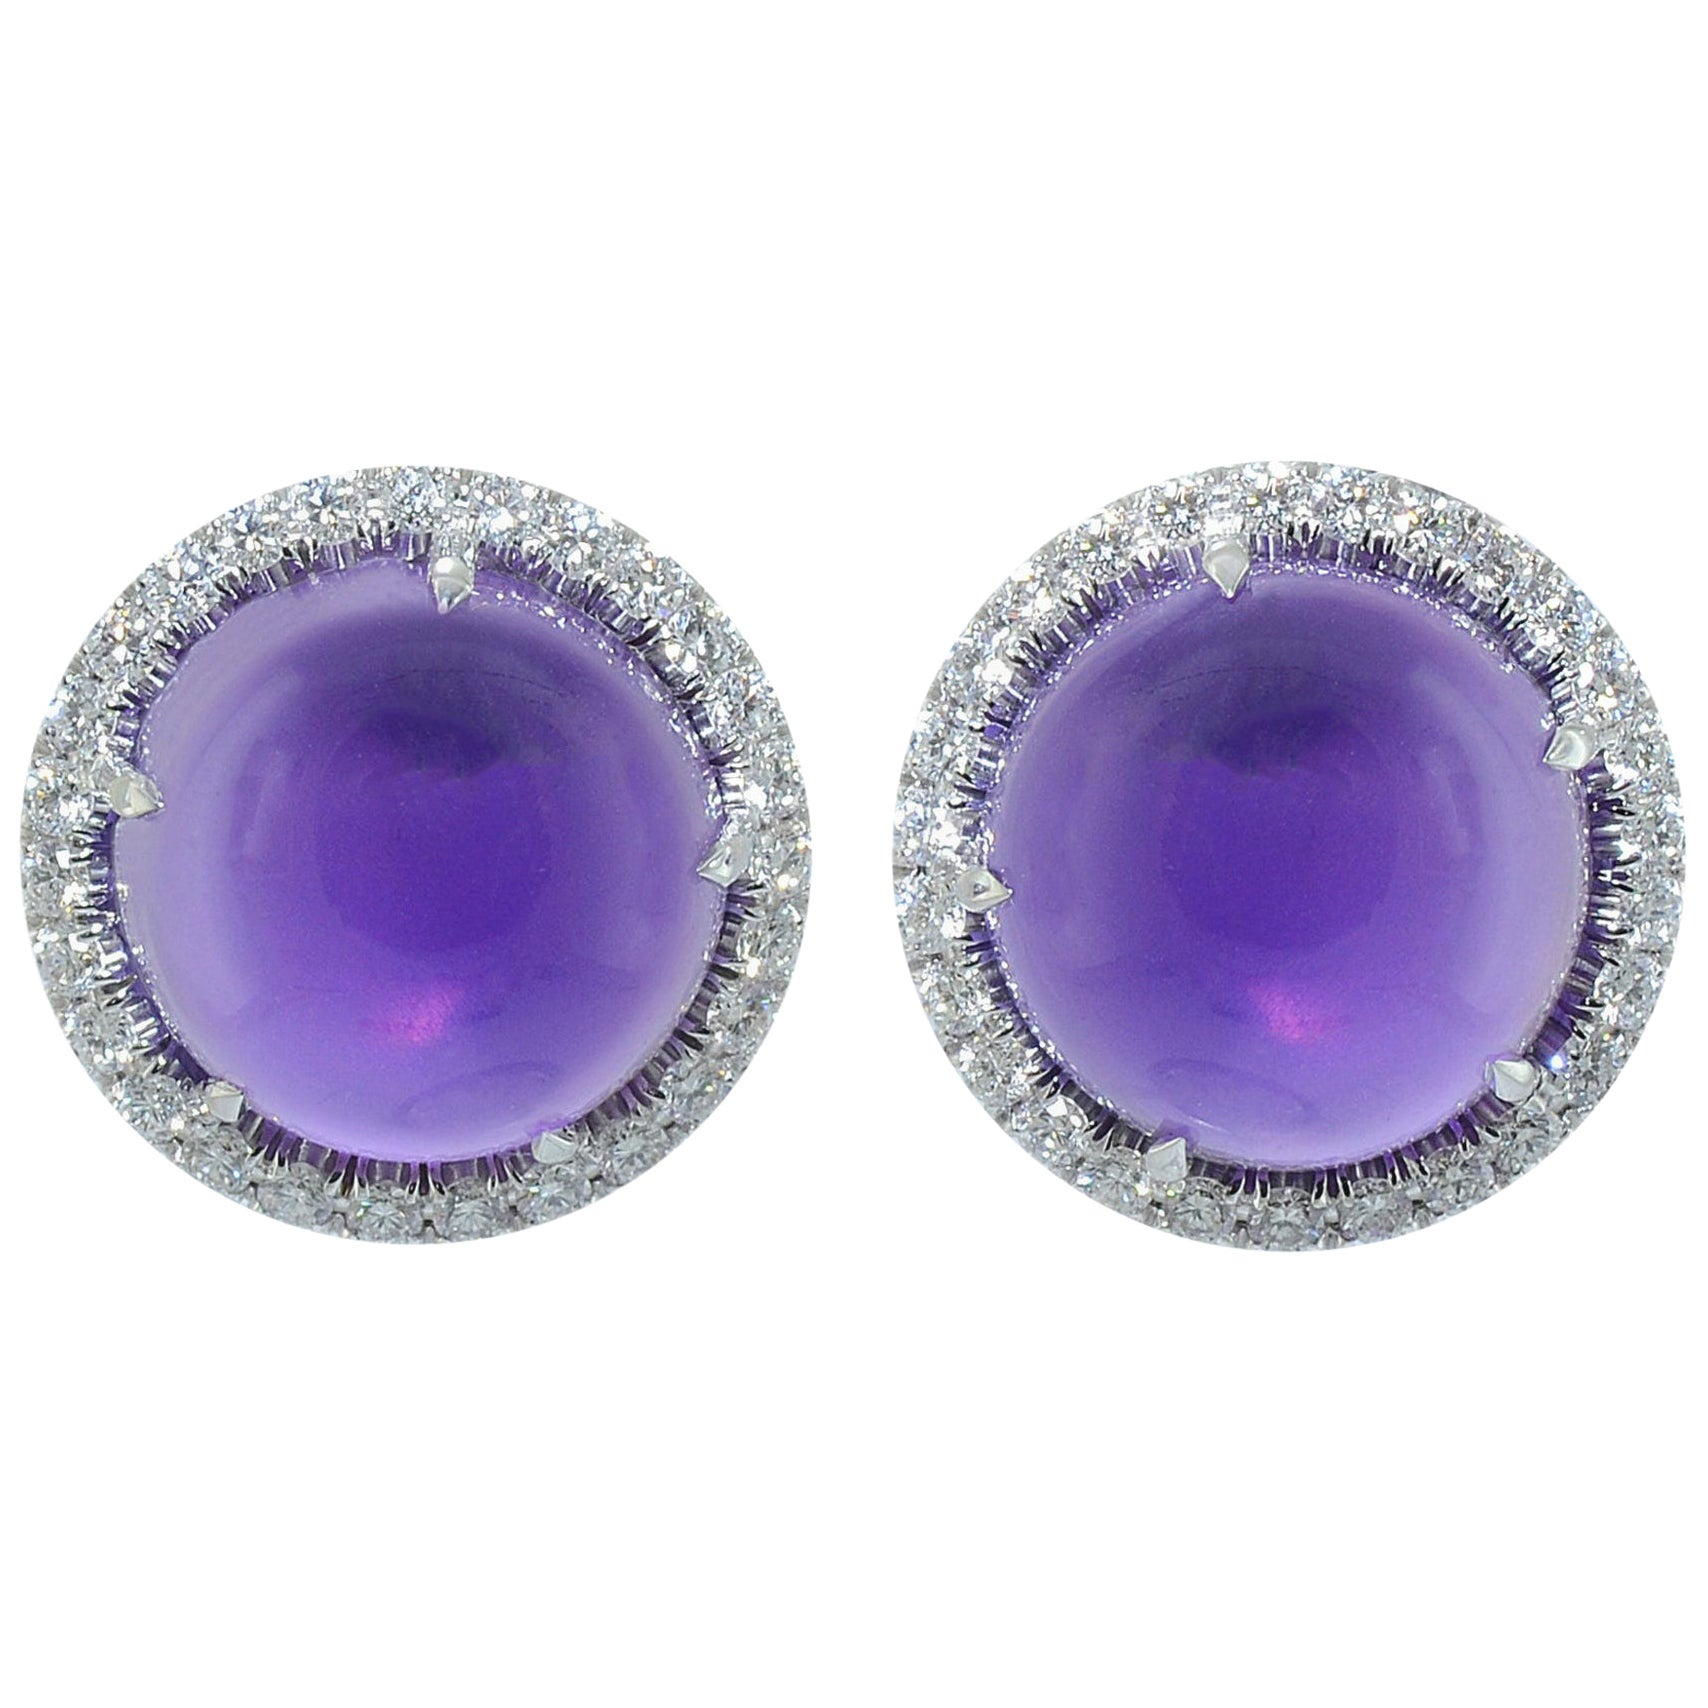 Diamond Cabochon Amethyst 18 KT White Gold Earrings Made in Italy